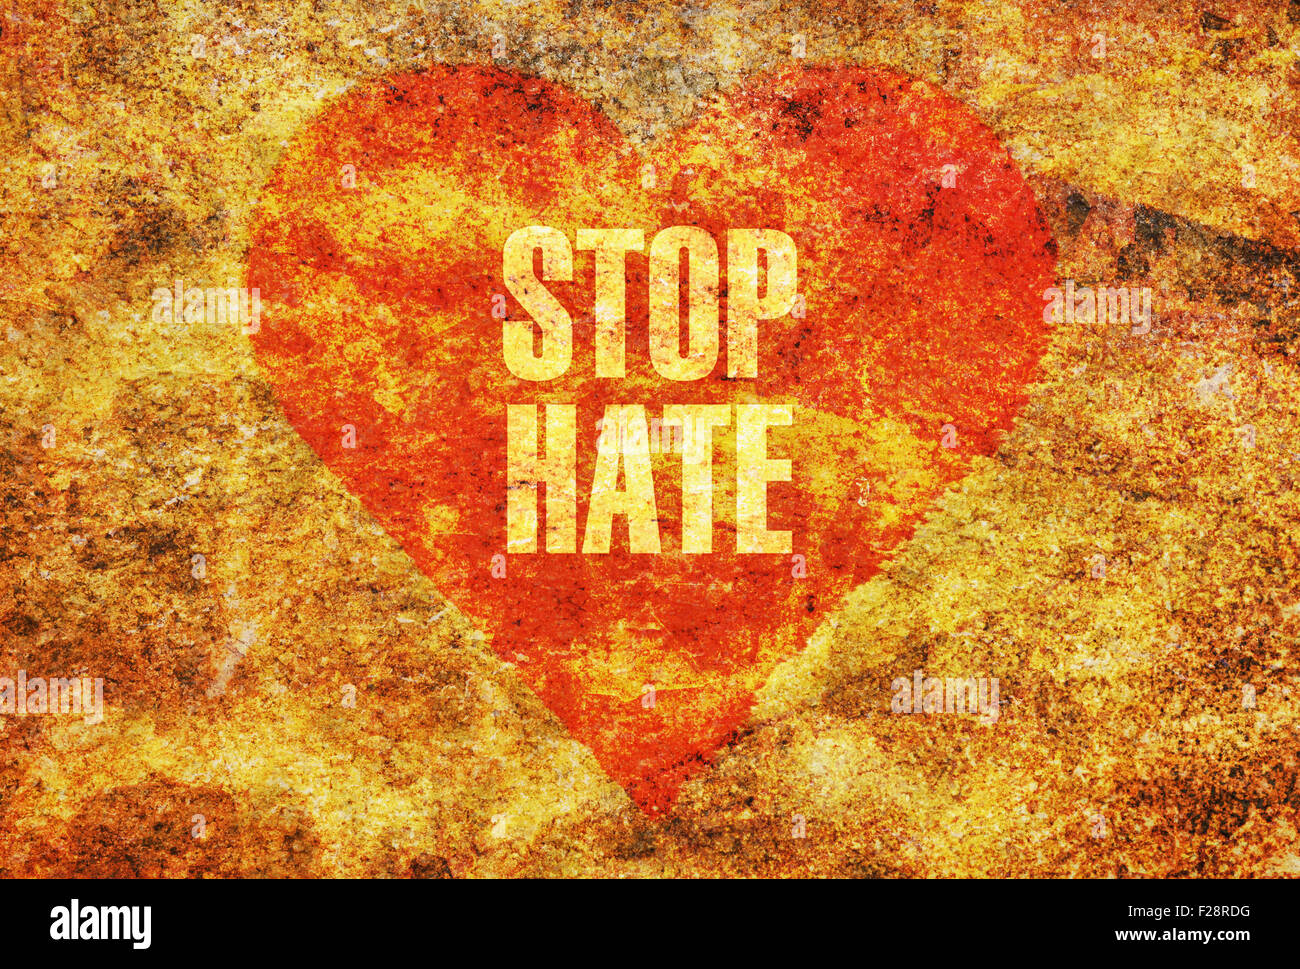 Text Stop Hate written with golden letters on a red heart - Stock Image